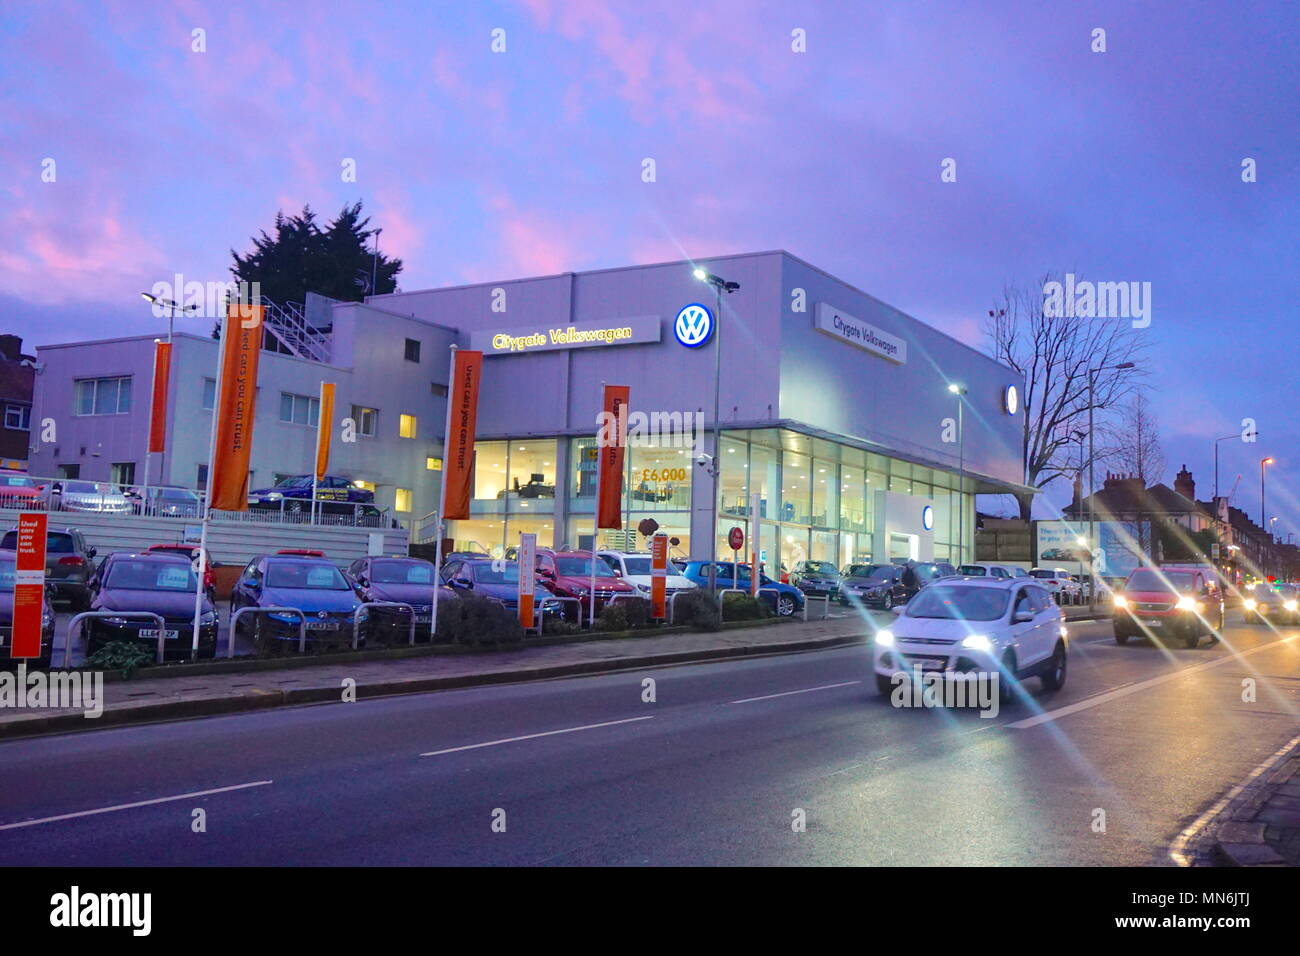 Vw Dealership Mn >> Vw Dealership Colindale London Uk England Stock Photo